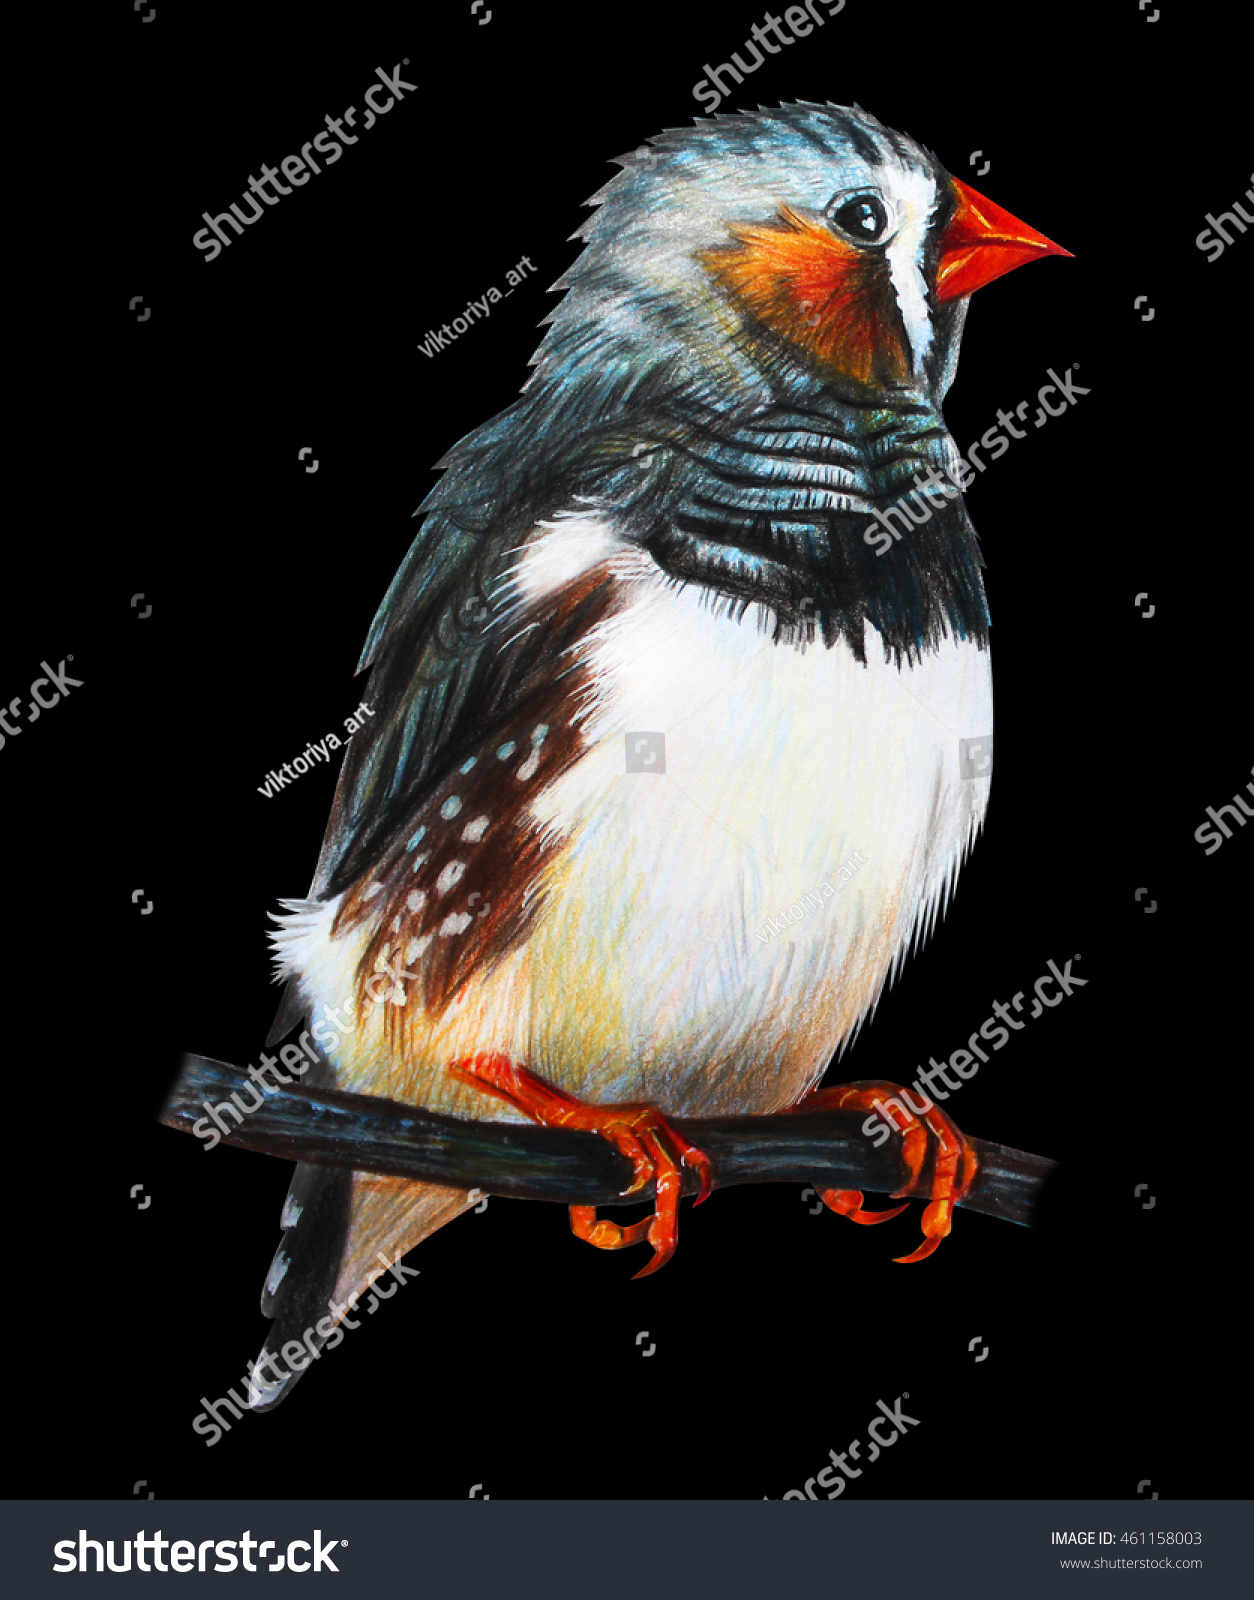 Finches bird drawing on black background stock illustration finches bird drawing on black background biocorpaavc